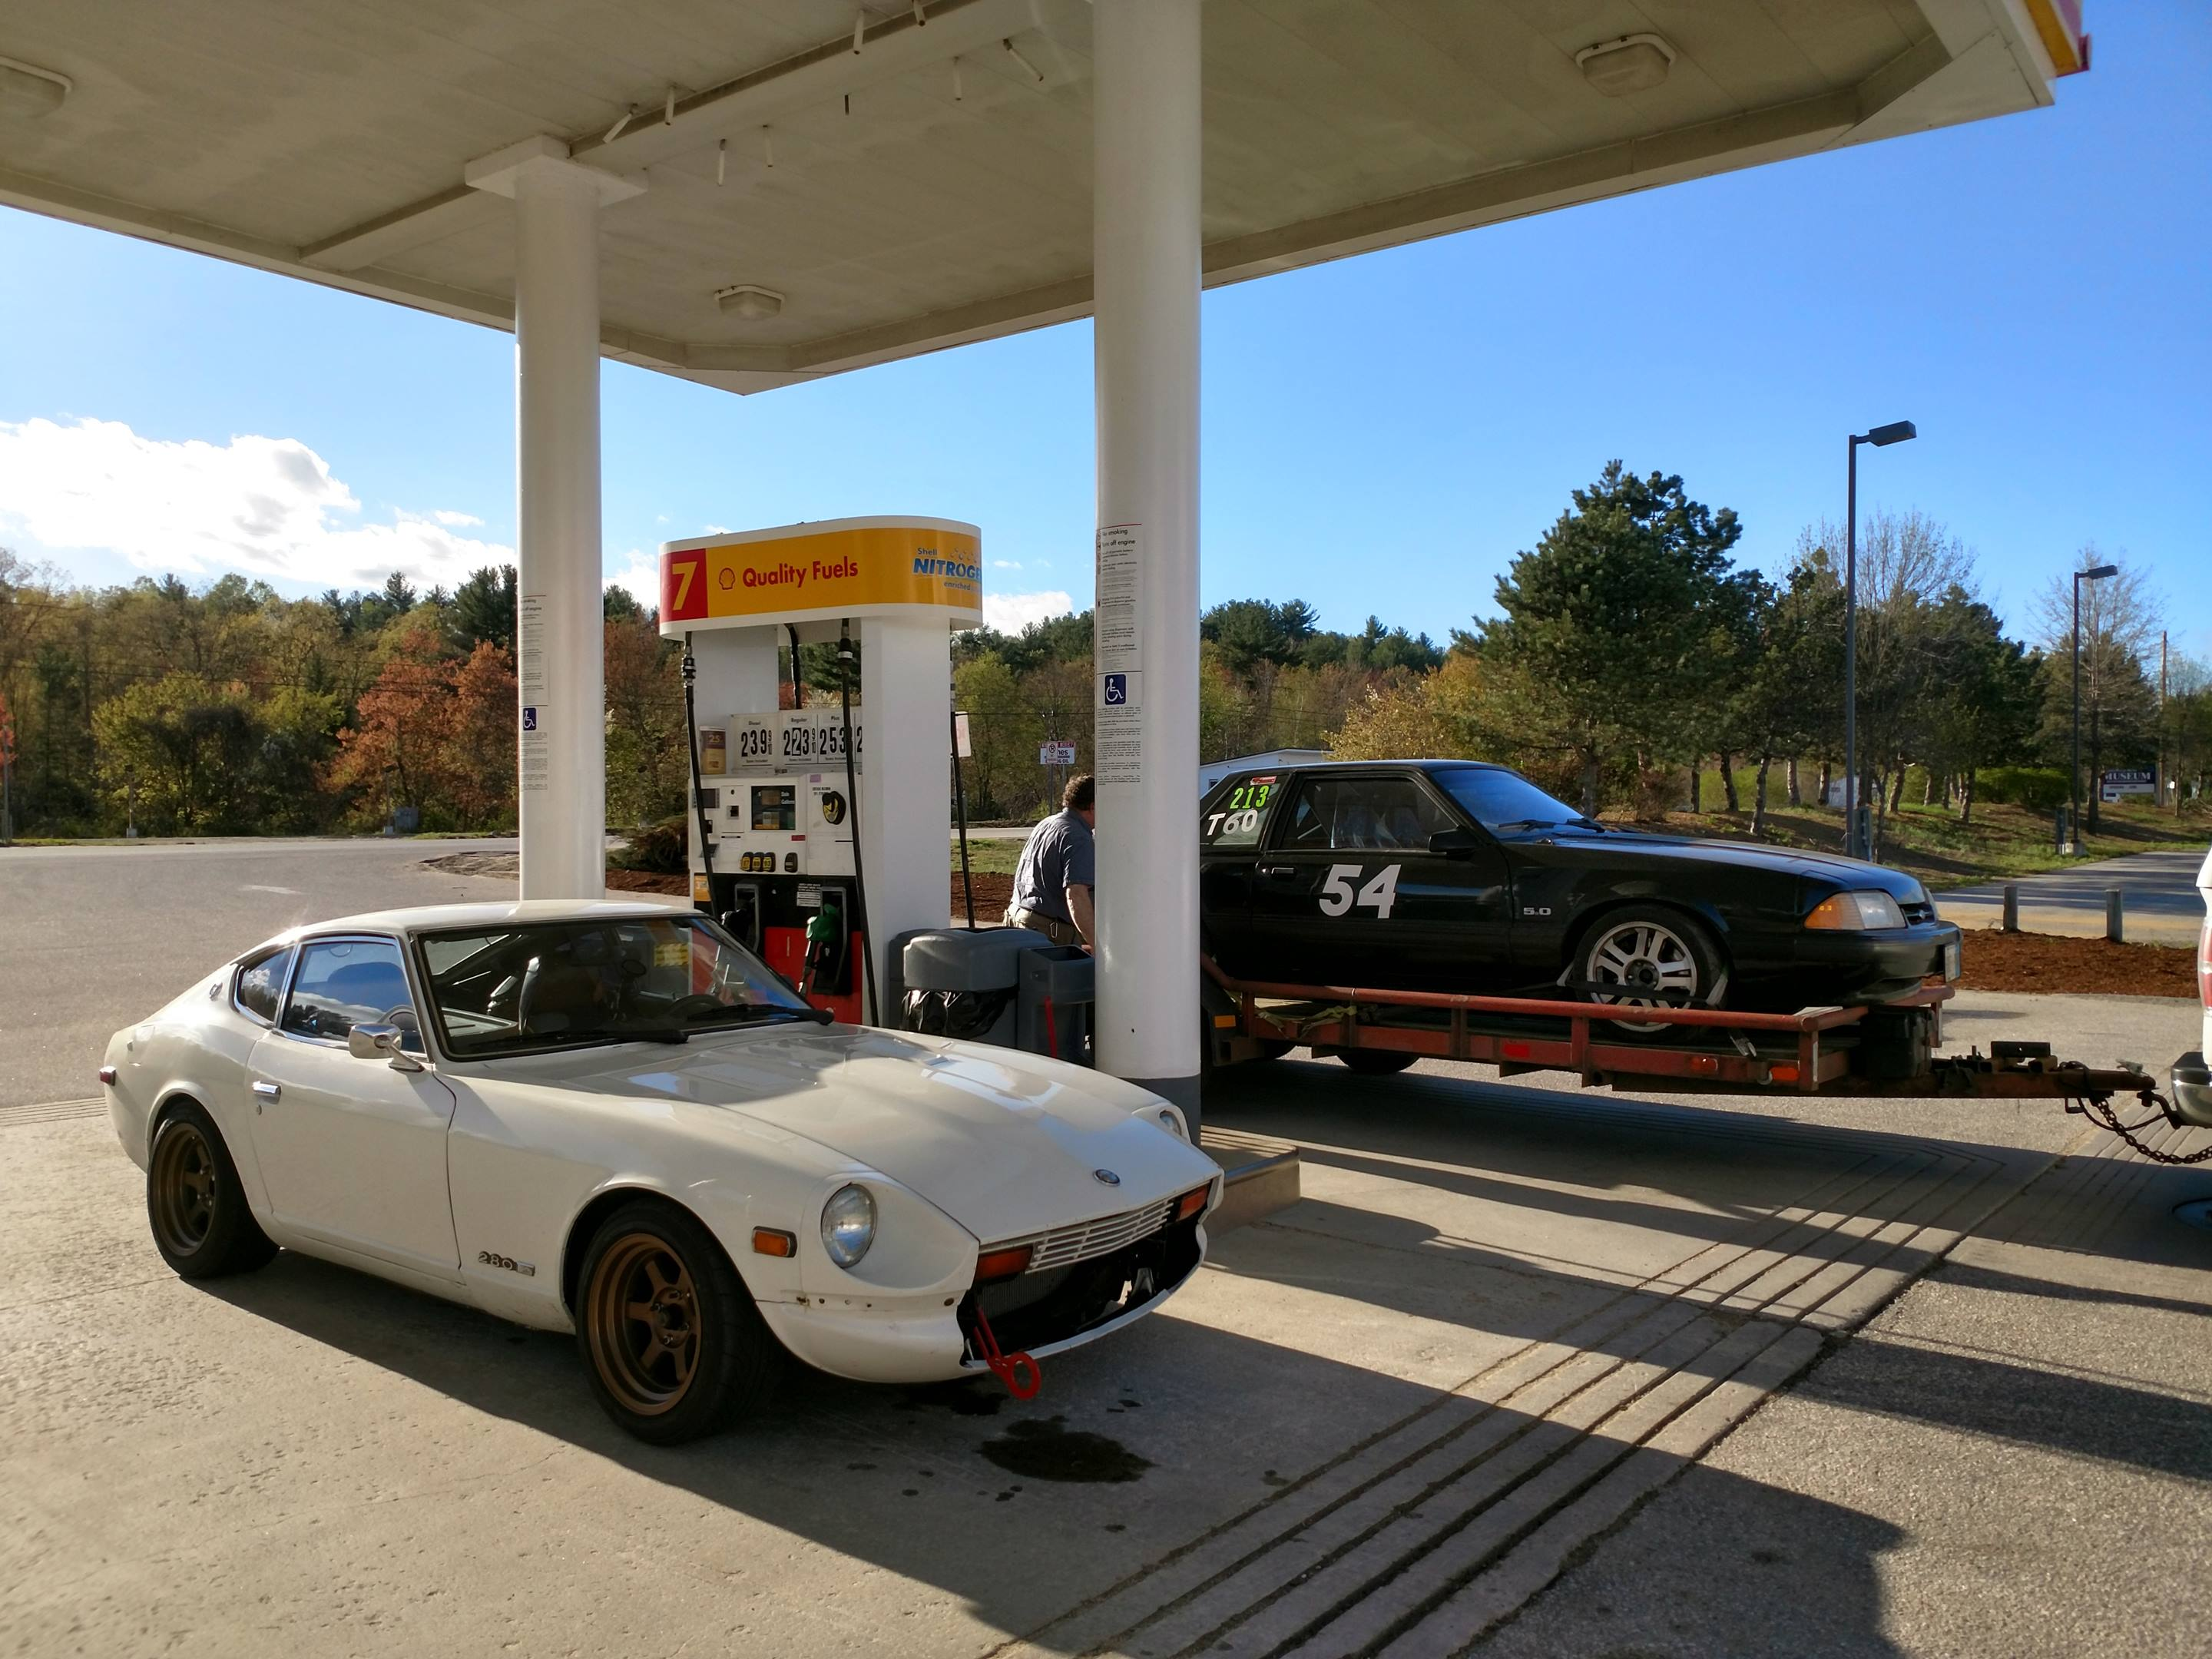 1978 Datsun 280Z fueling up before hitting the track